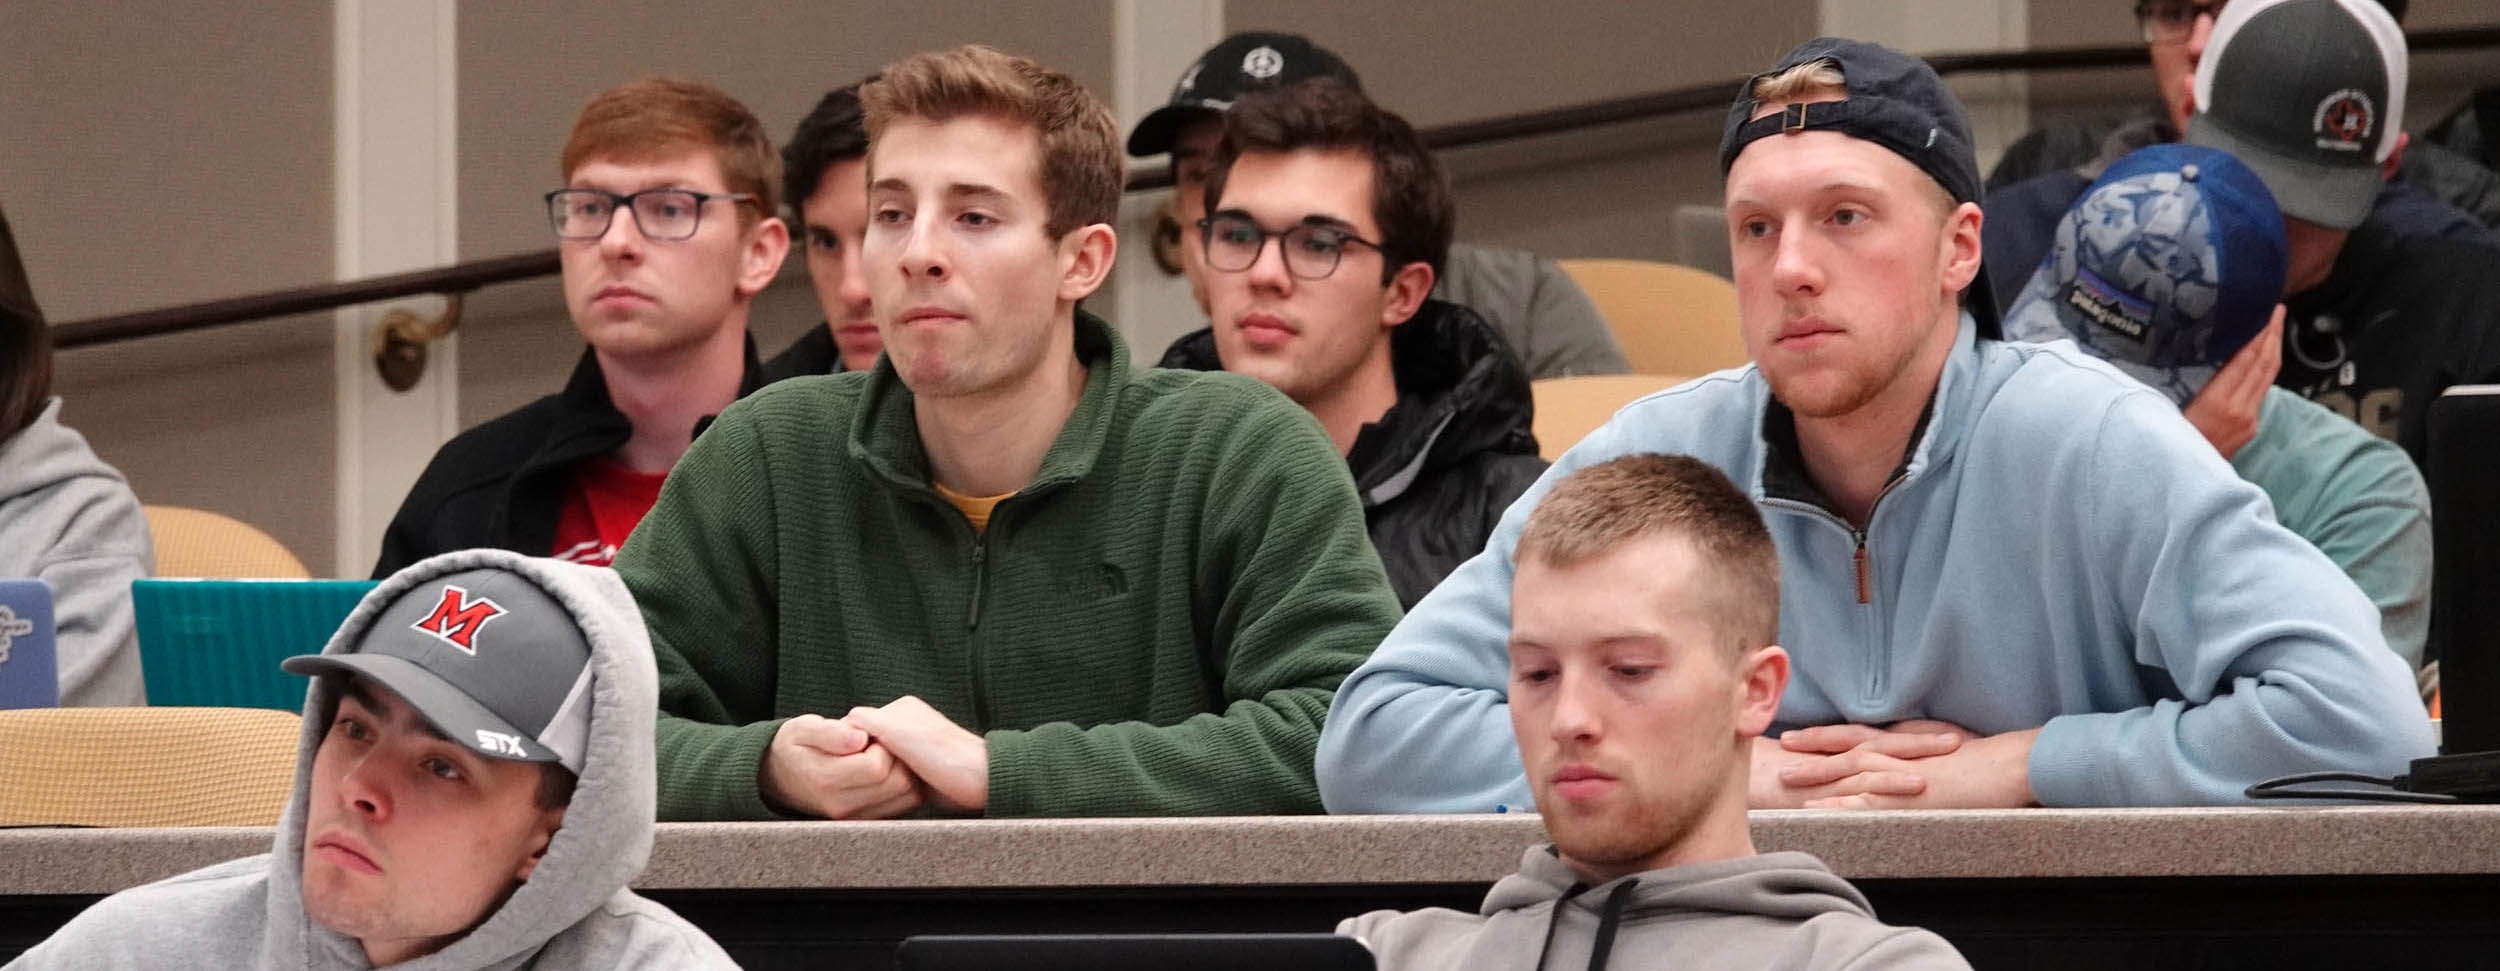 Students at supply chain speaker